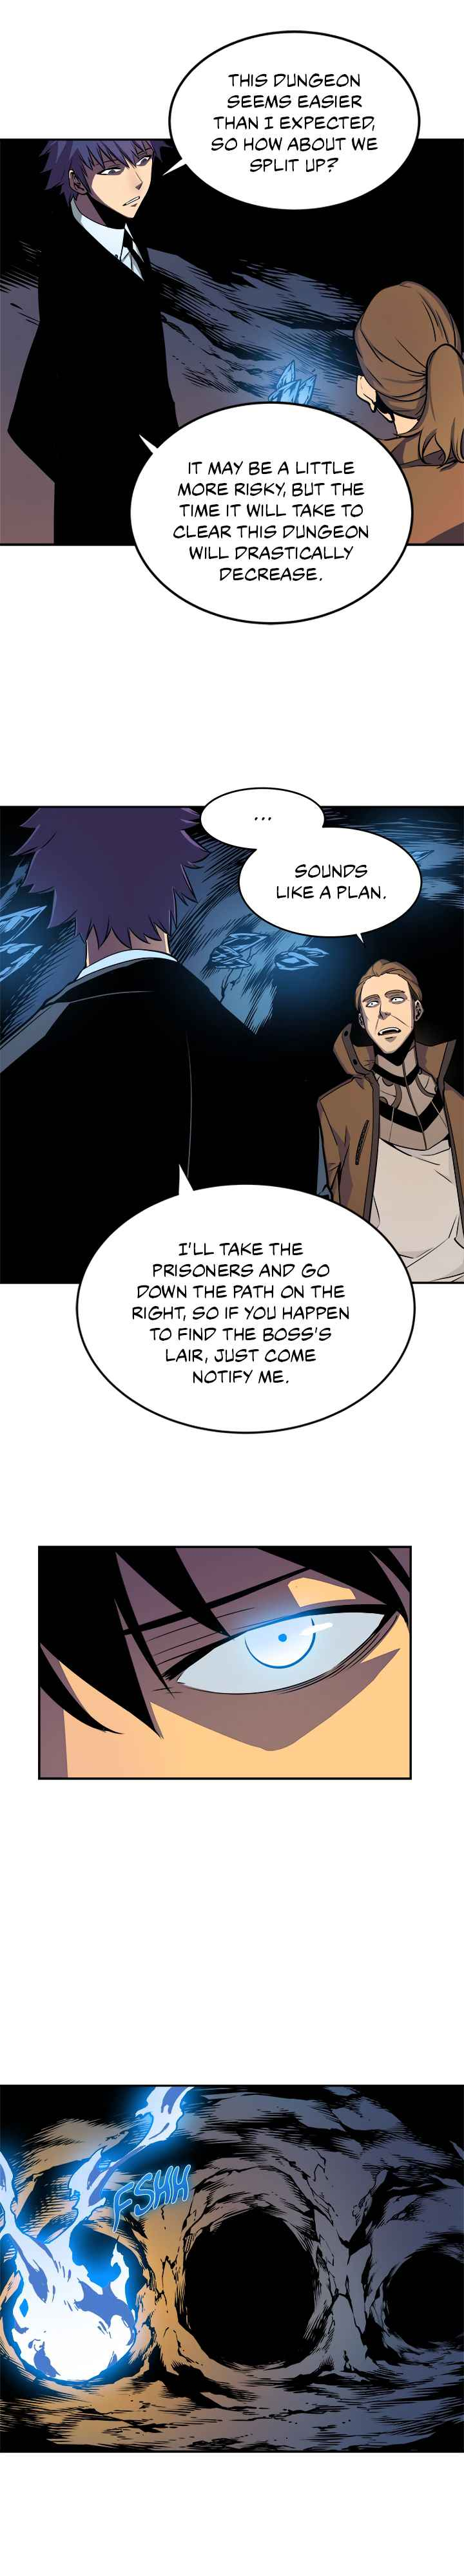 Solo Leveling Chapter 29 Page 14